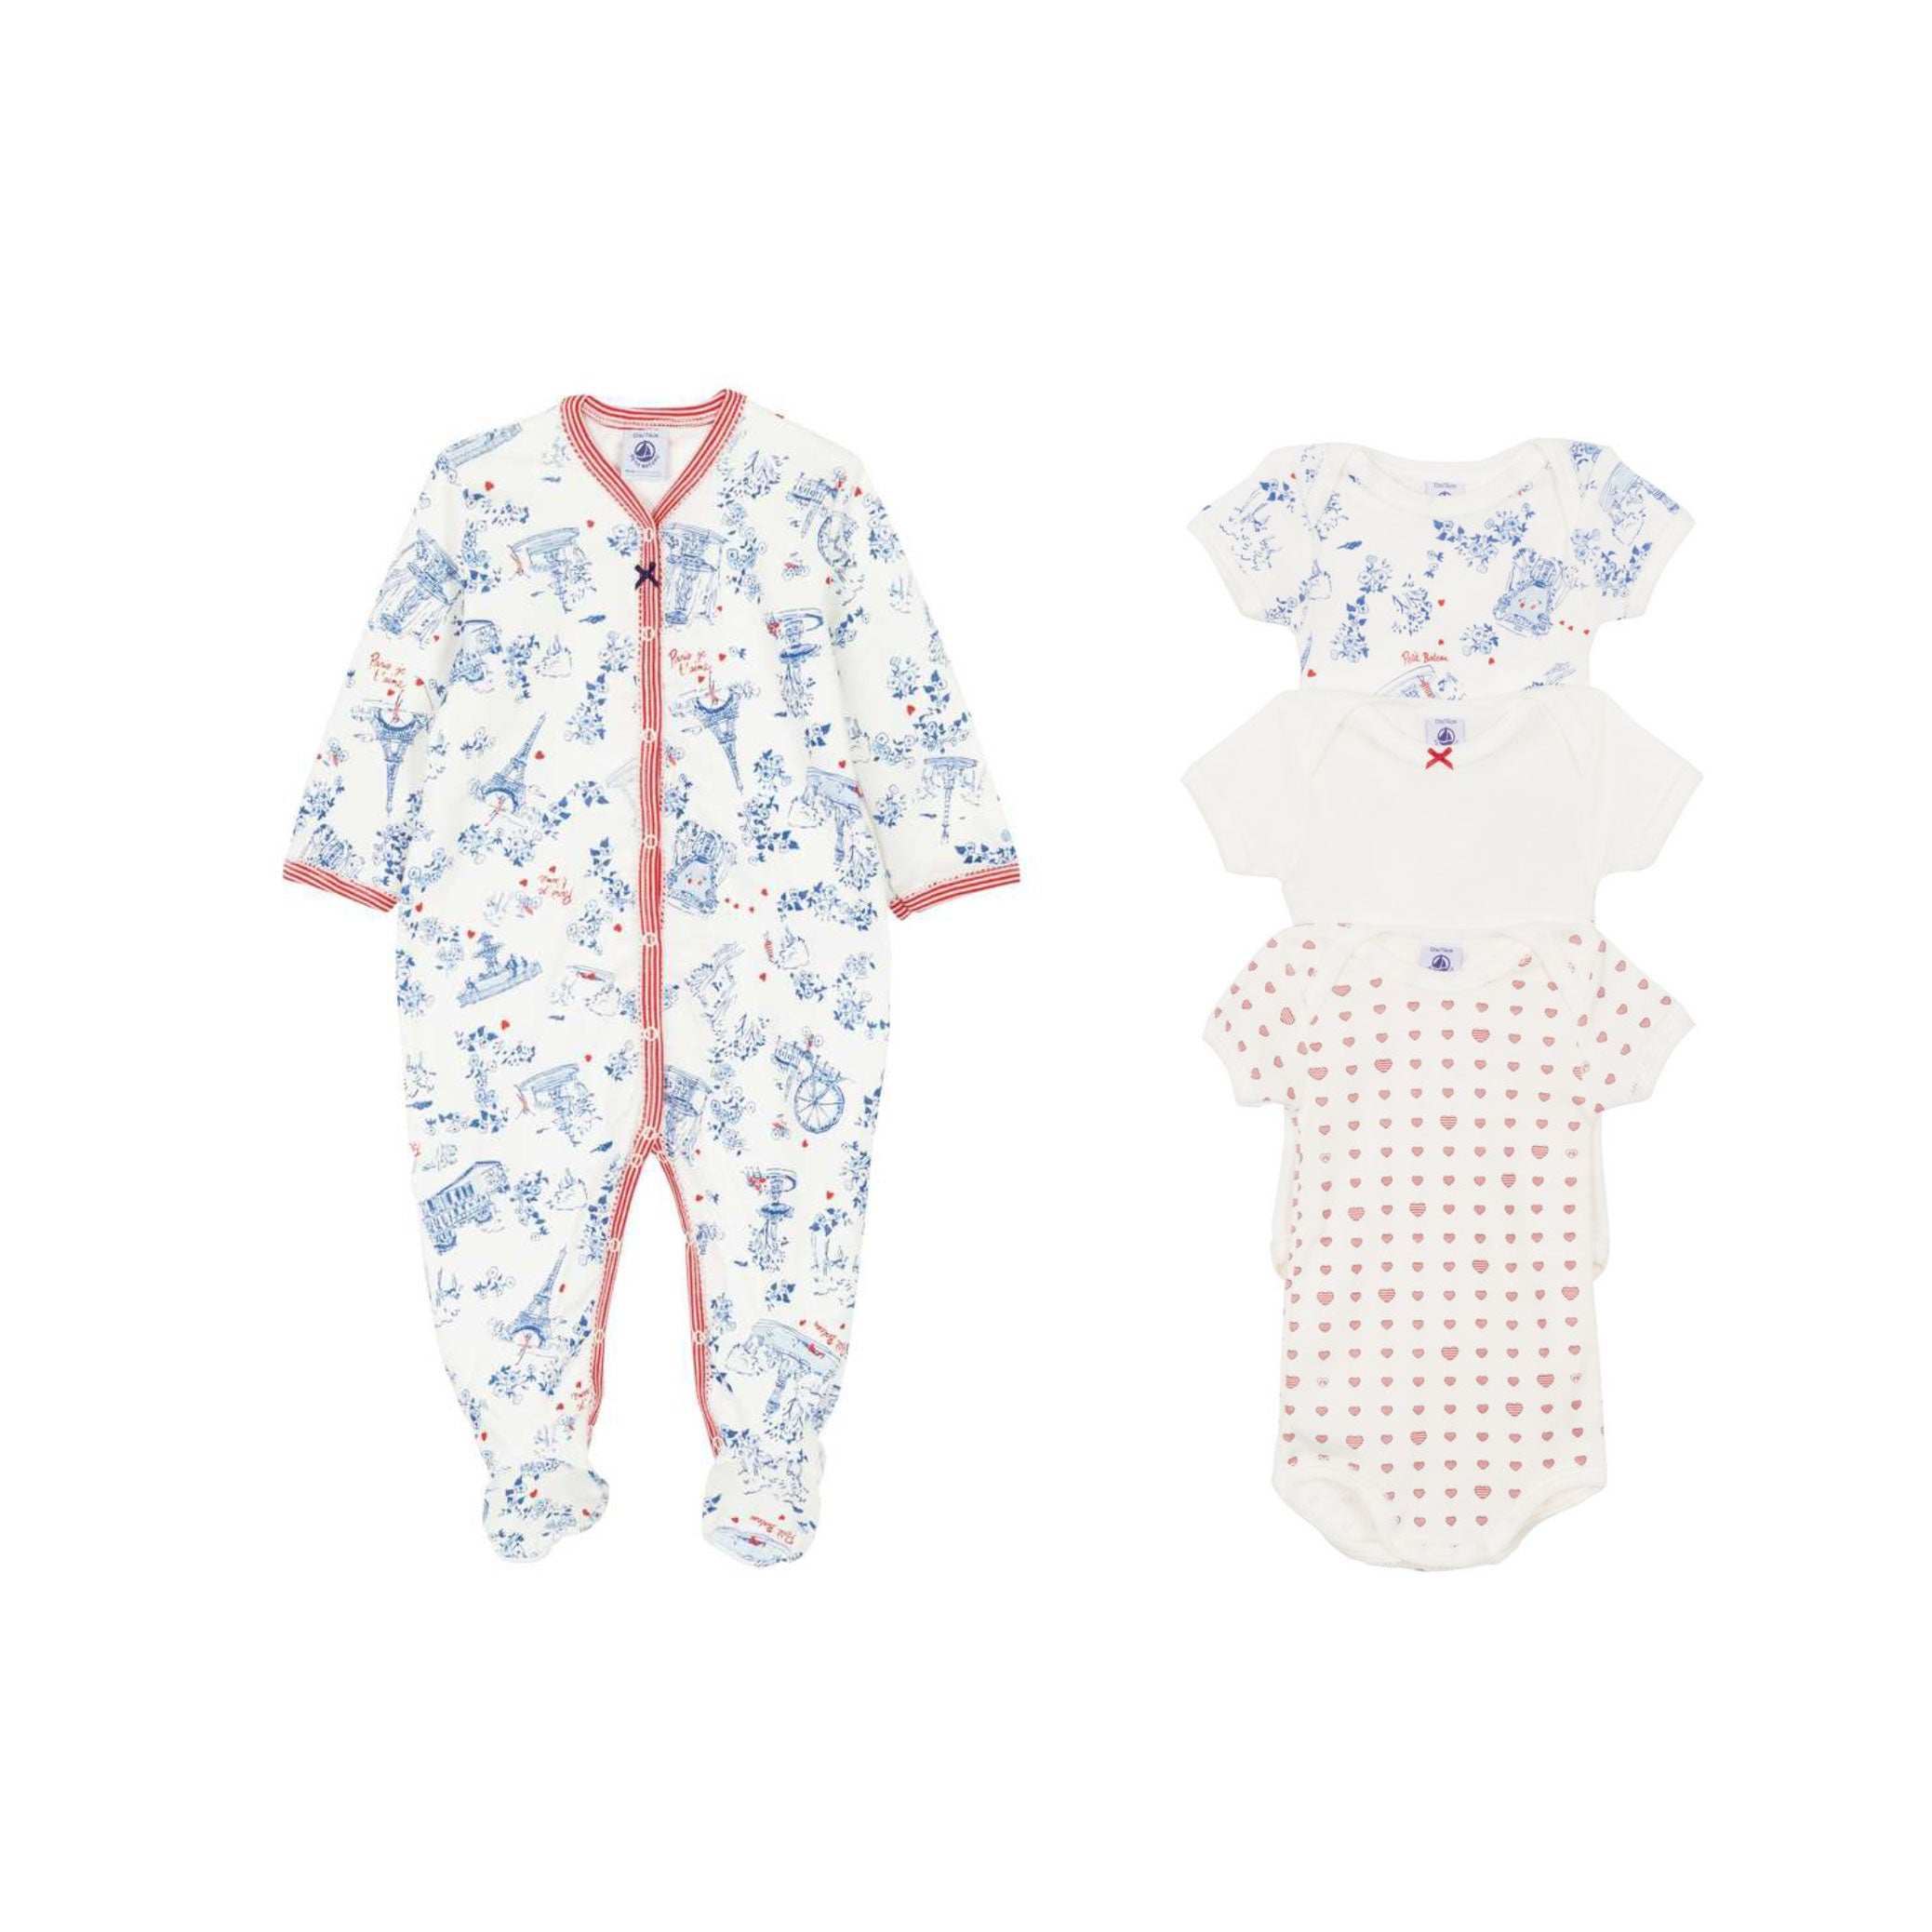 Petit Bateau 4 piece Sleeper and Onesies set with Paris Print at Bonjour Baby Baskets, Luxury baby gifts